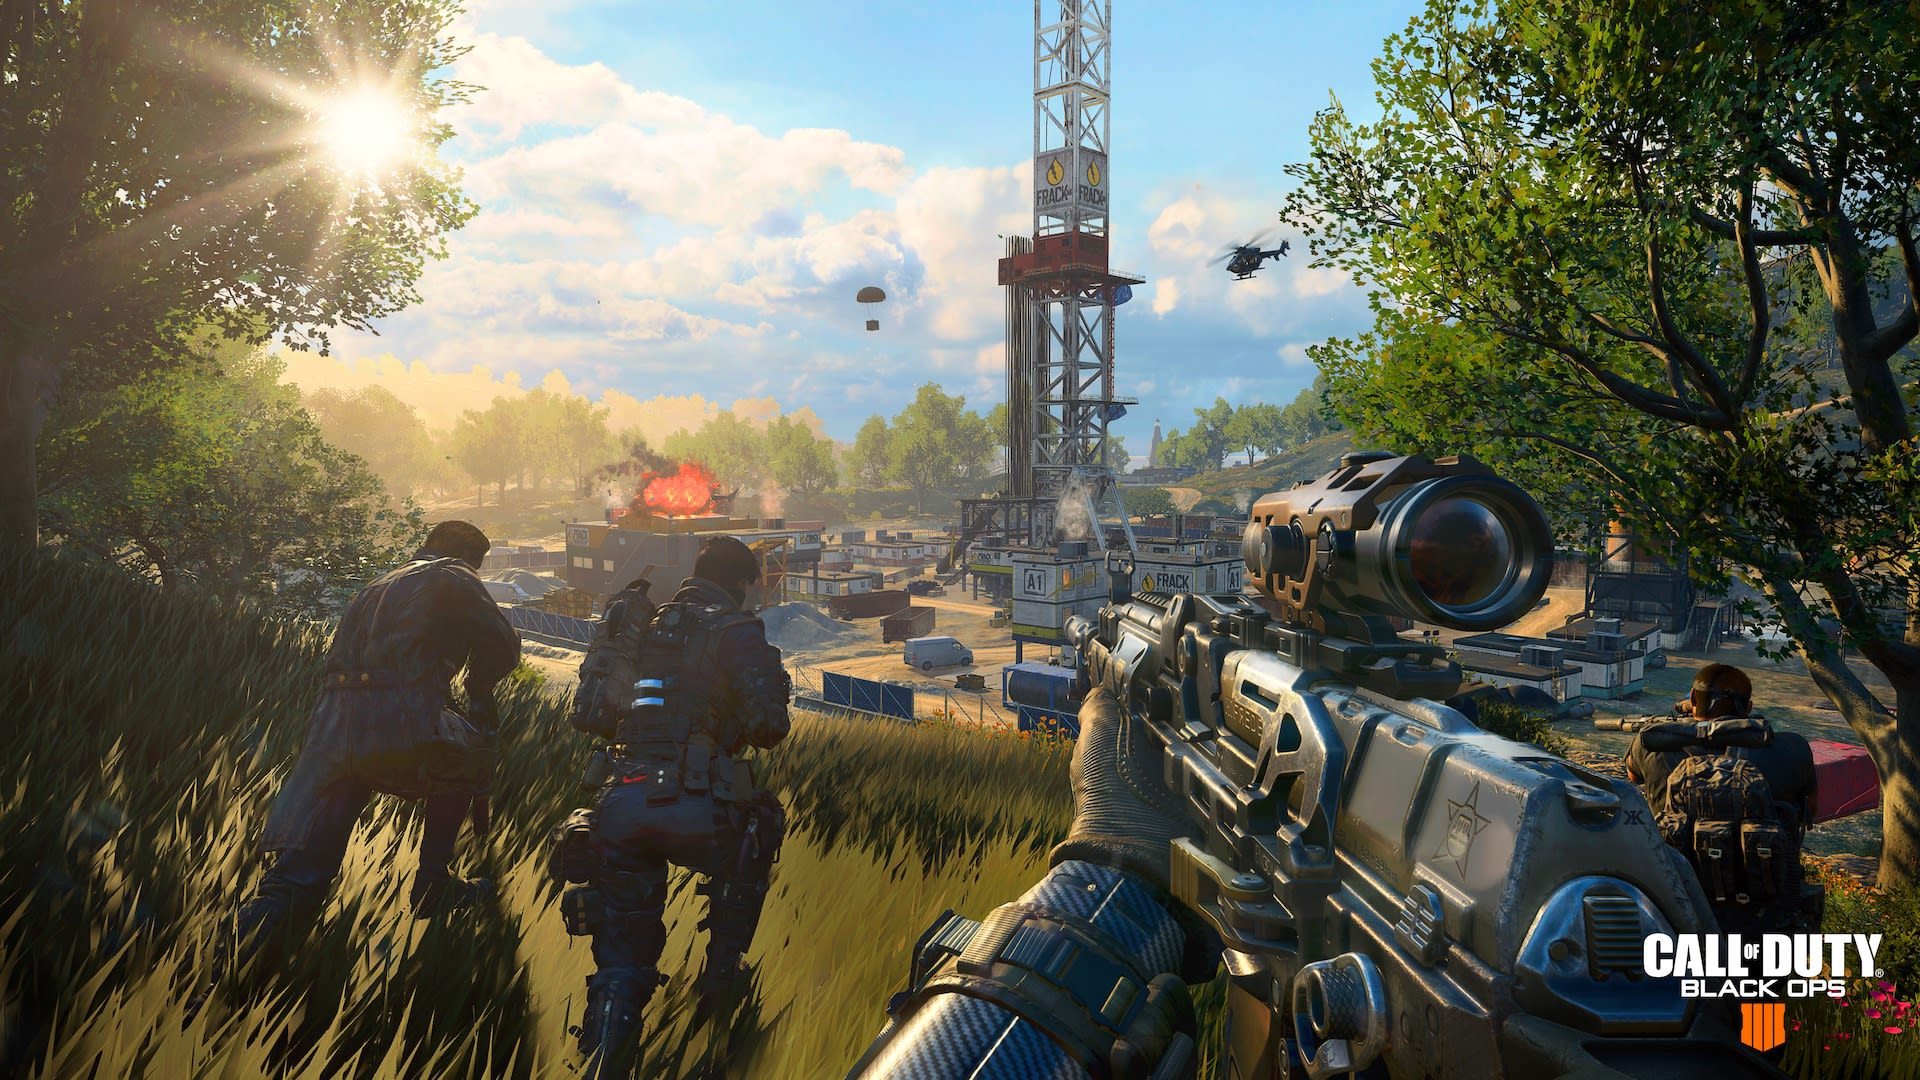 Black Ops 5's release has been pushed up to 2020 following a Call of Duty rescheduling.